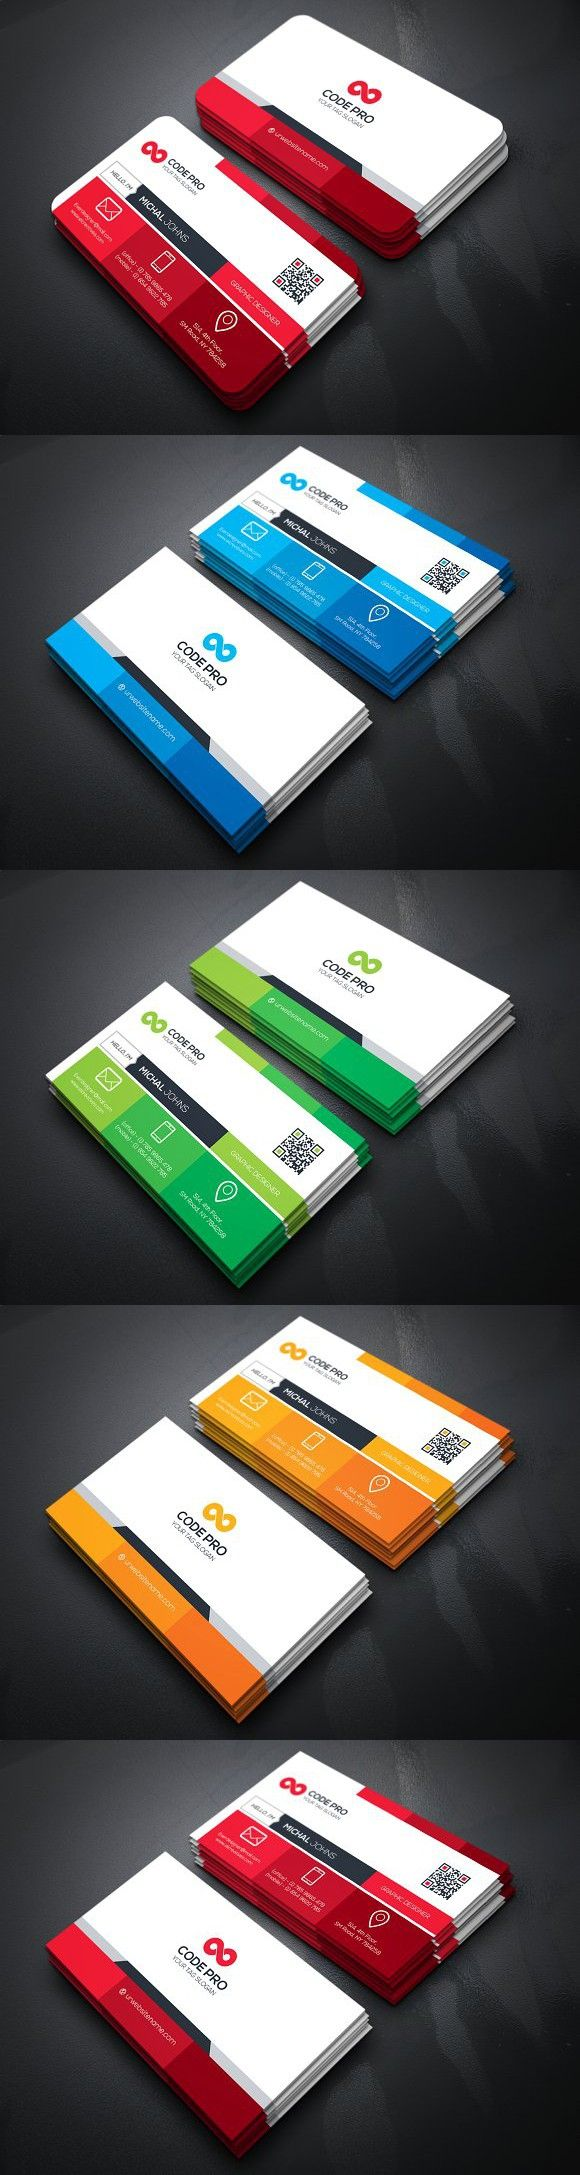 Business cards voorhees nj choice image card design and card template business cards marlton nj image collections card design and card bce business cards express choice image reheart Image collections